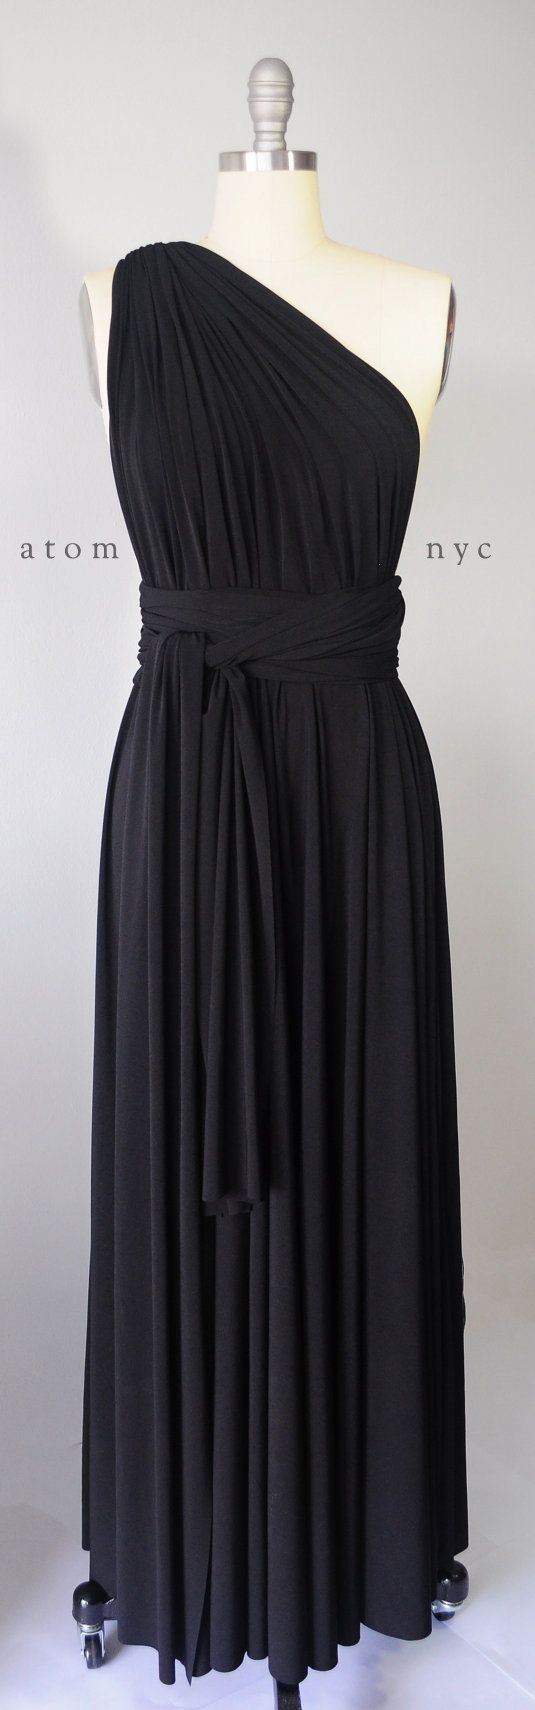 20 best bridesmaid dress images on pinterest classic dresses a classic black dress that can be worn in infinite ways for different occasions you ombrellifo Images